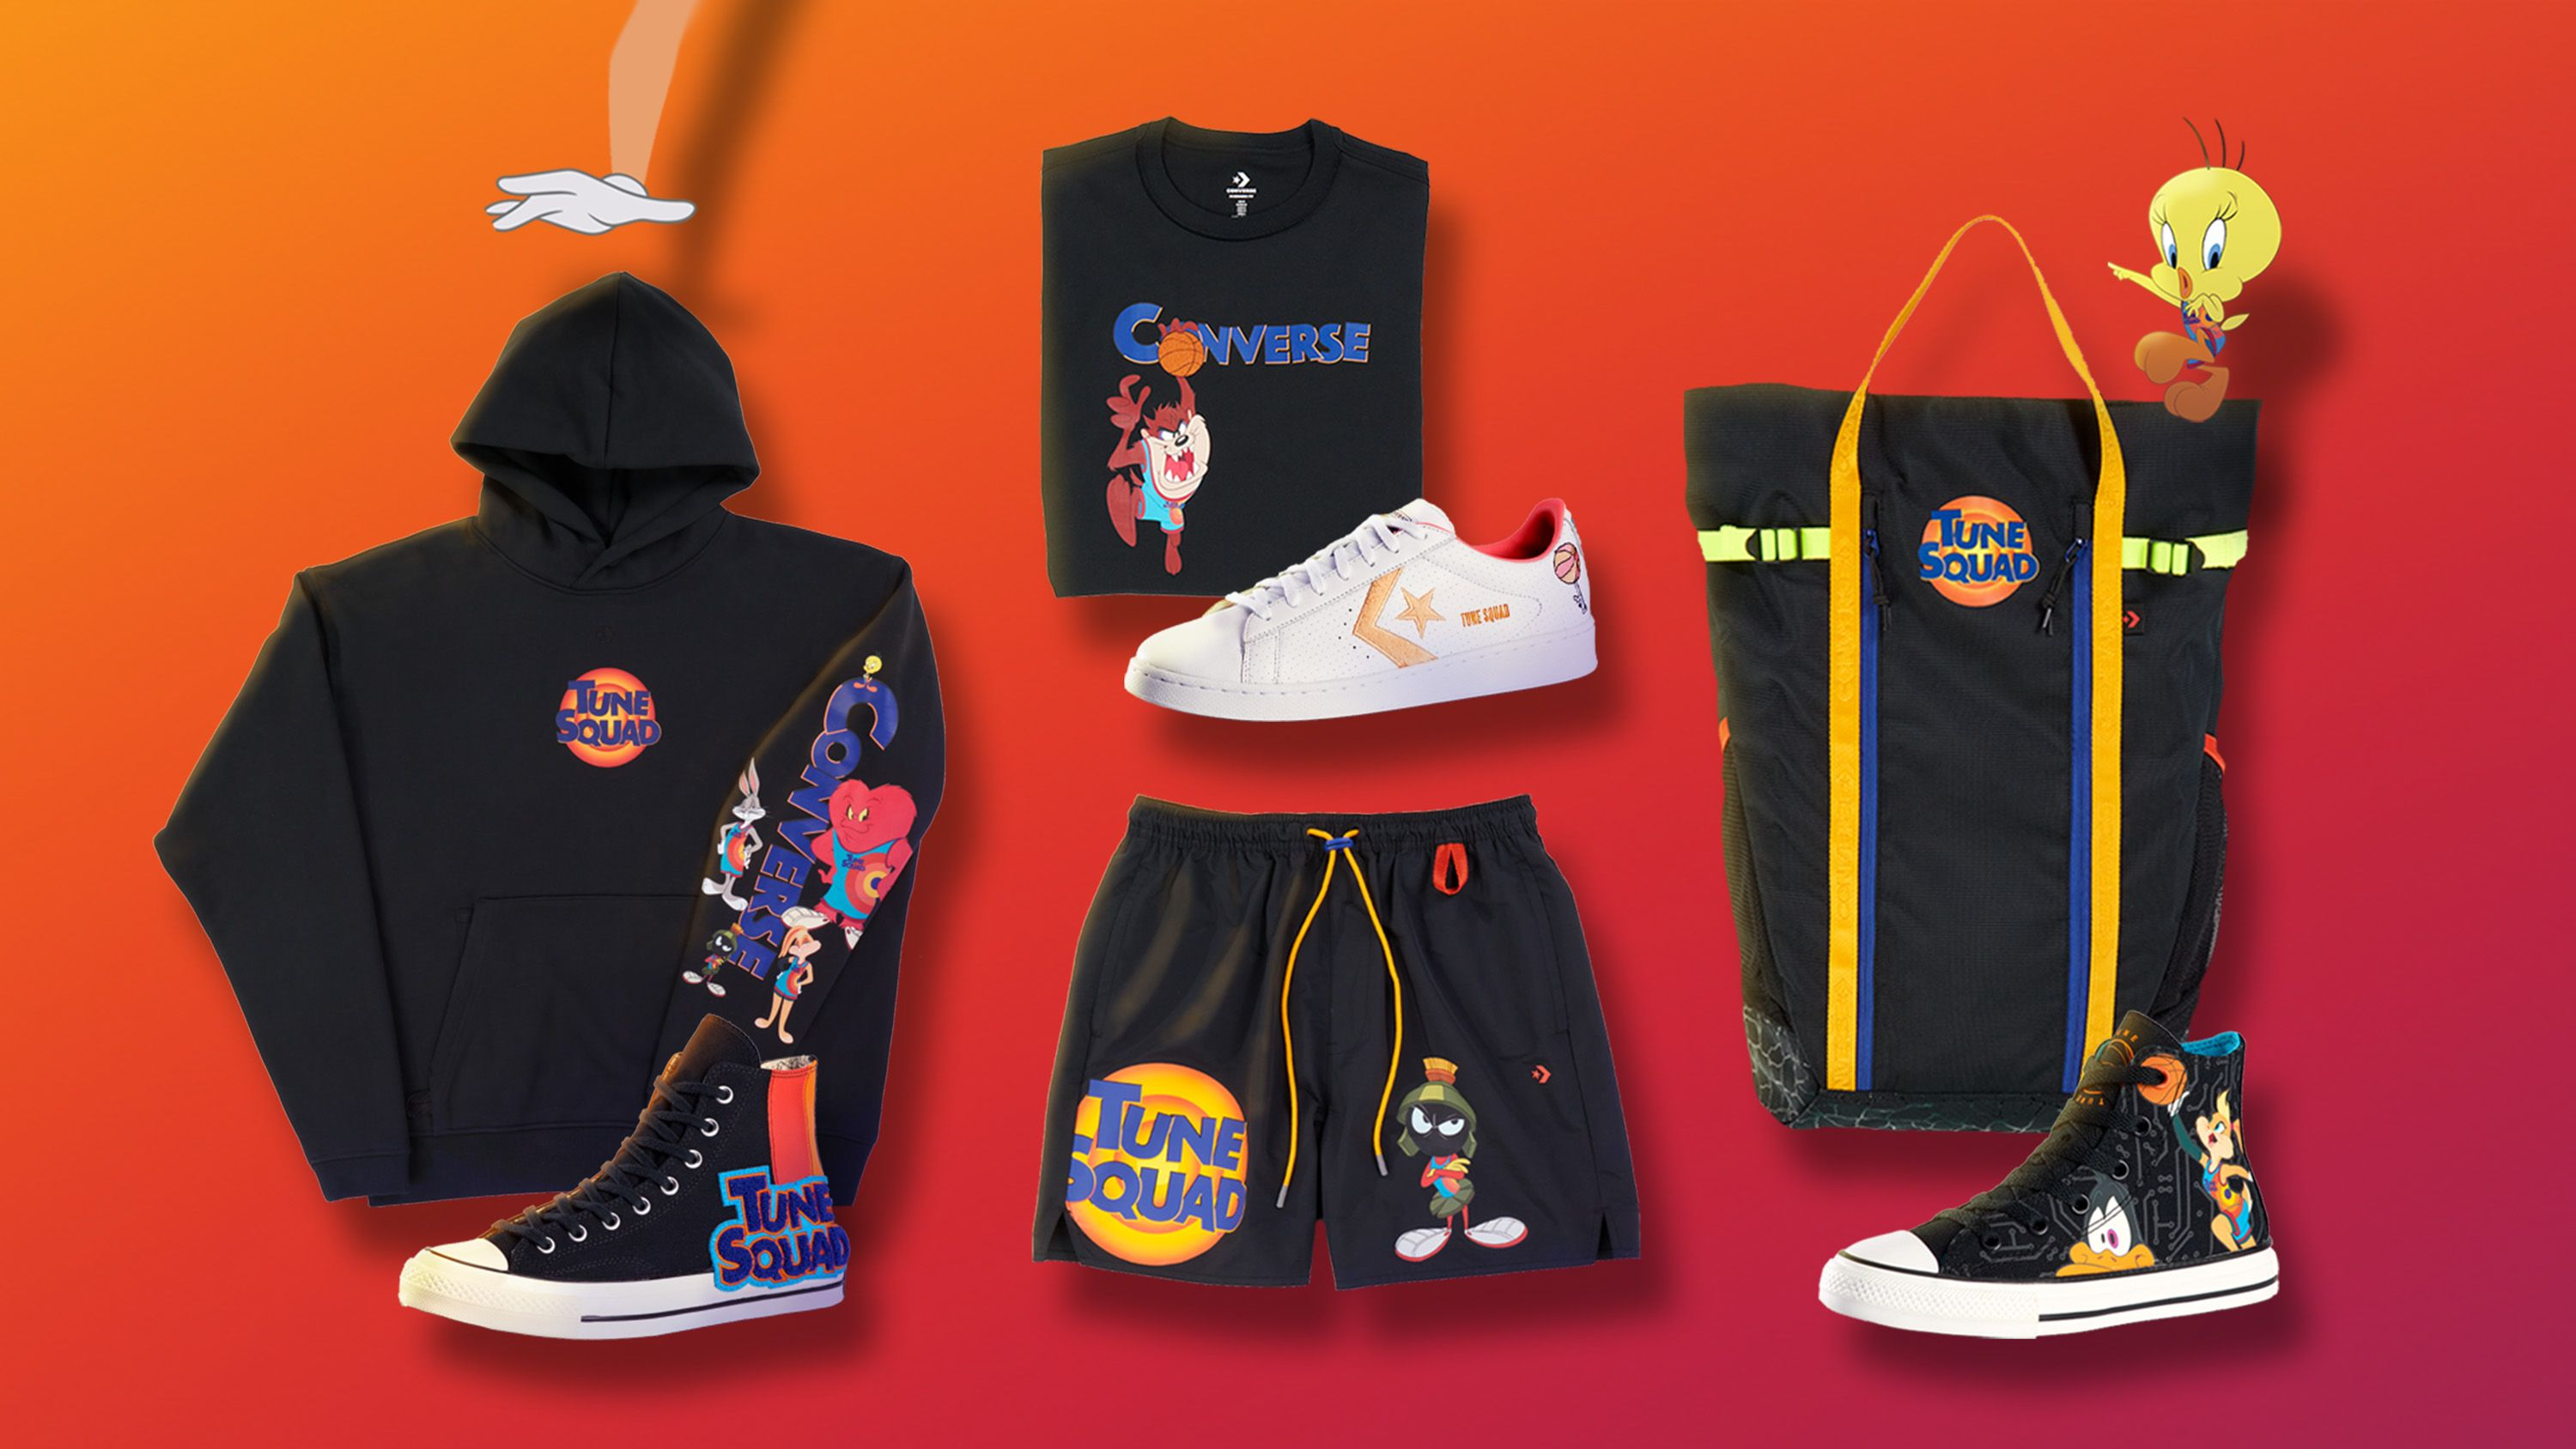 Space Jam 2 Gets New LeBron James Poster, Themed Nike and Converse Sneakers